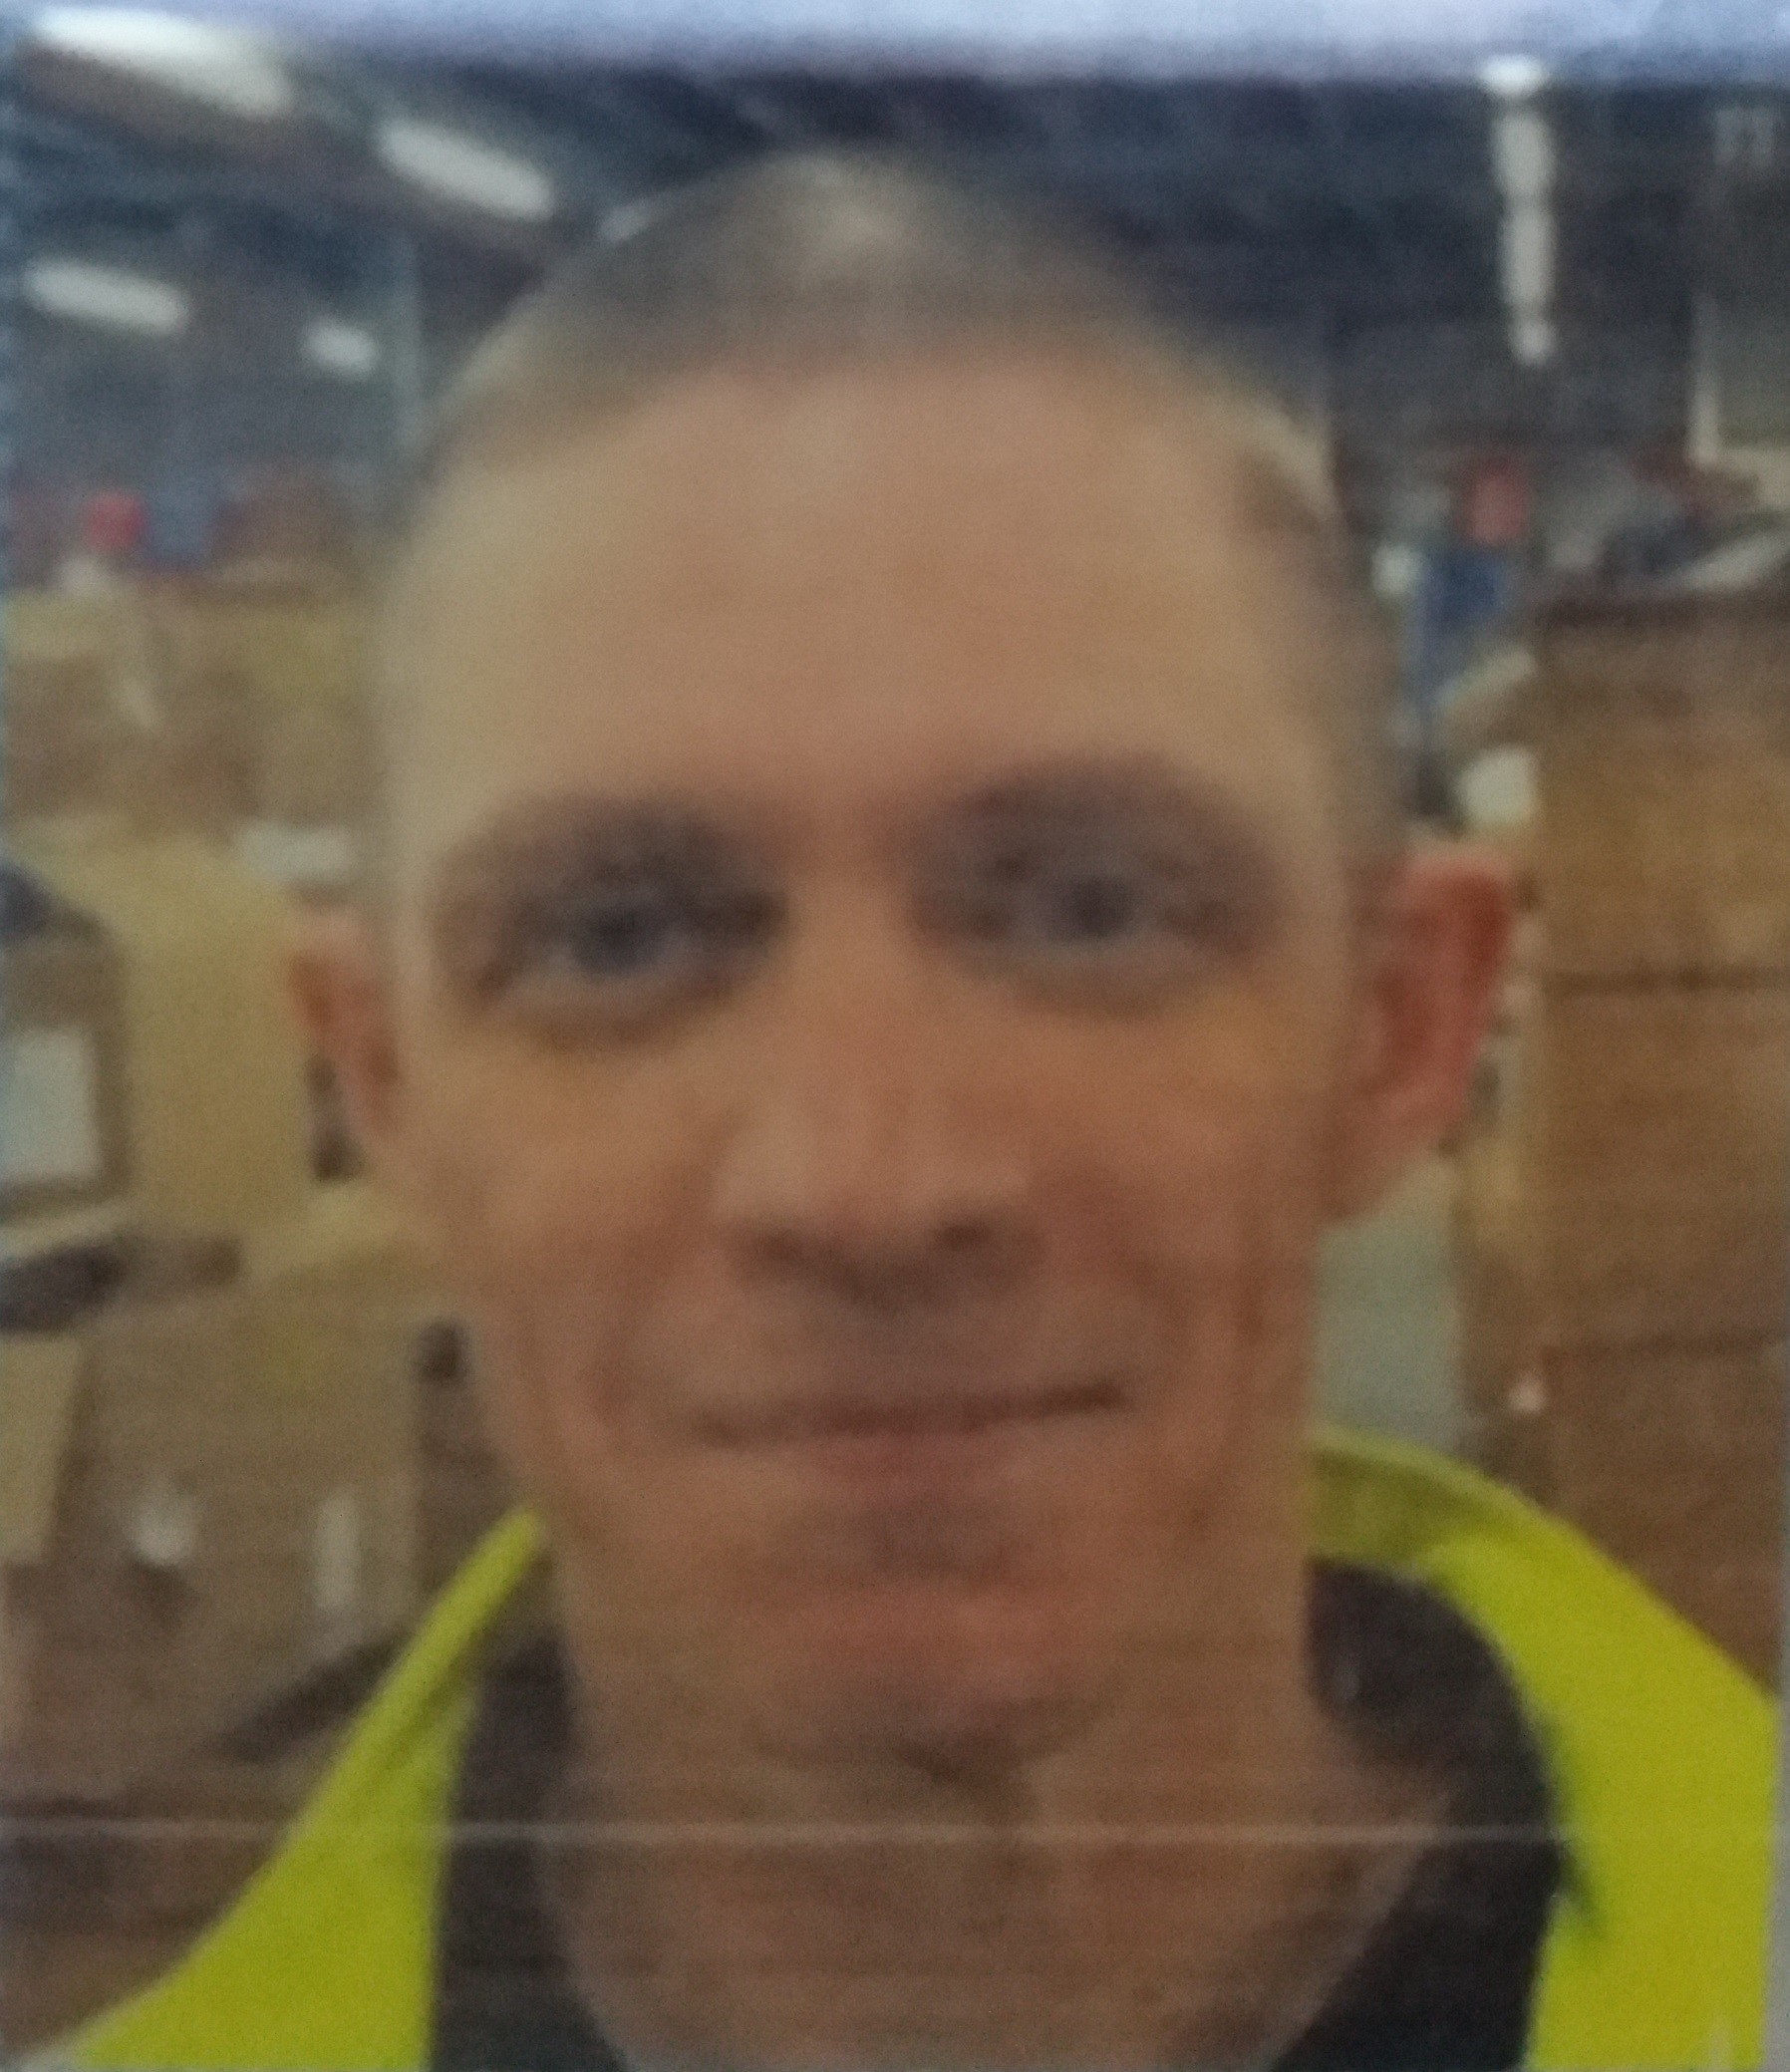 MISSING: Lee Heywood